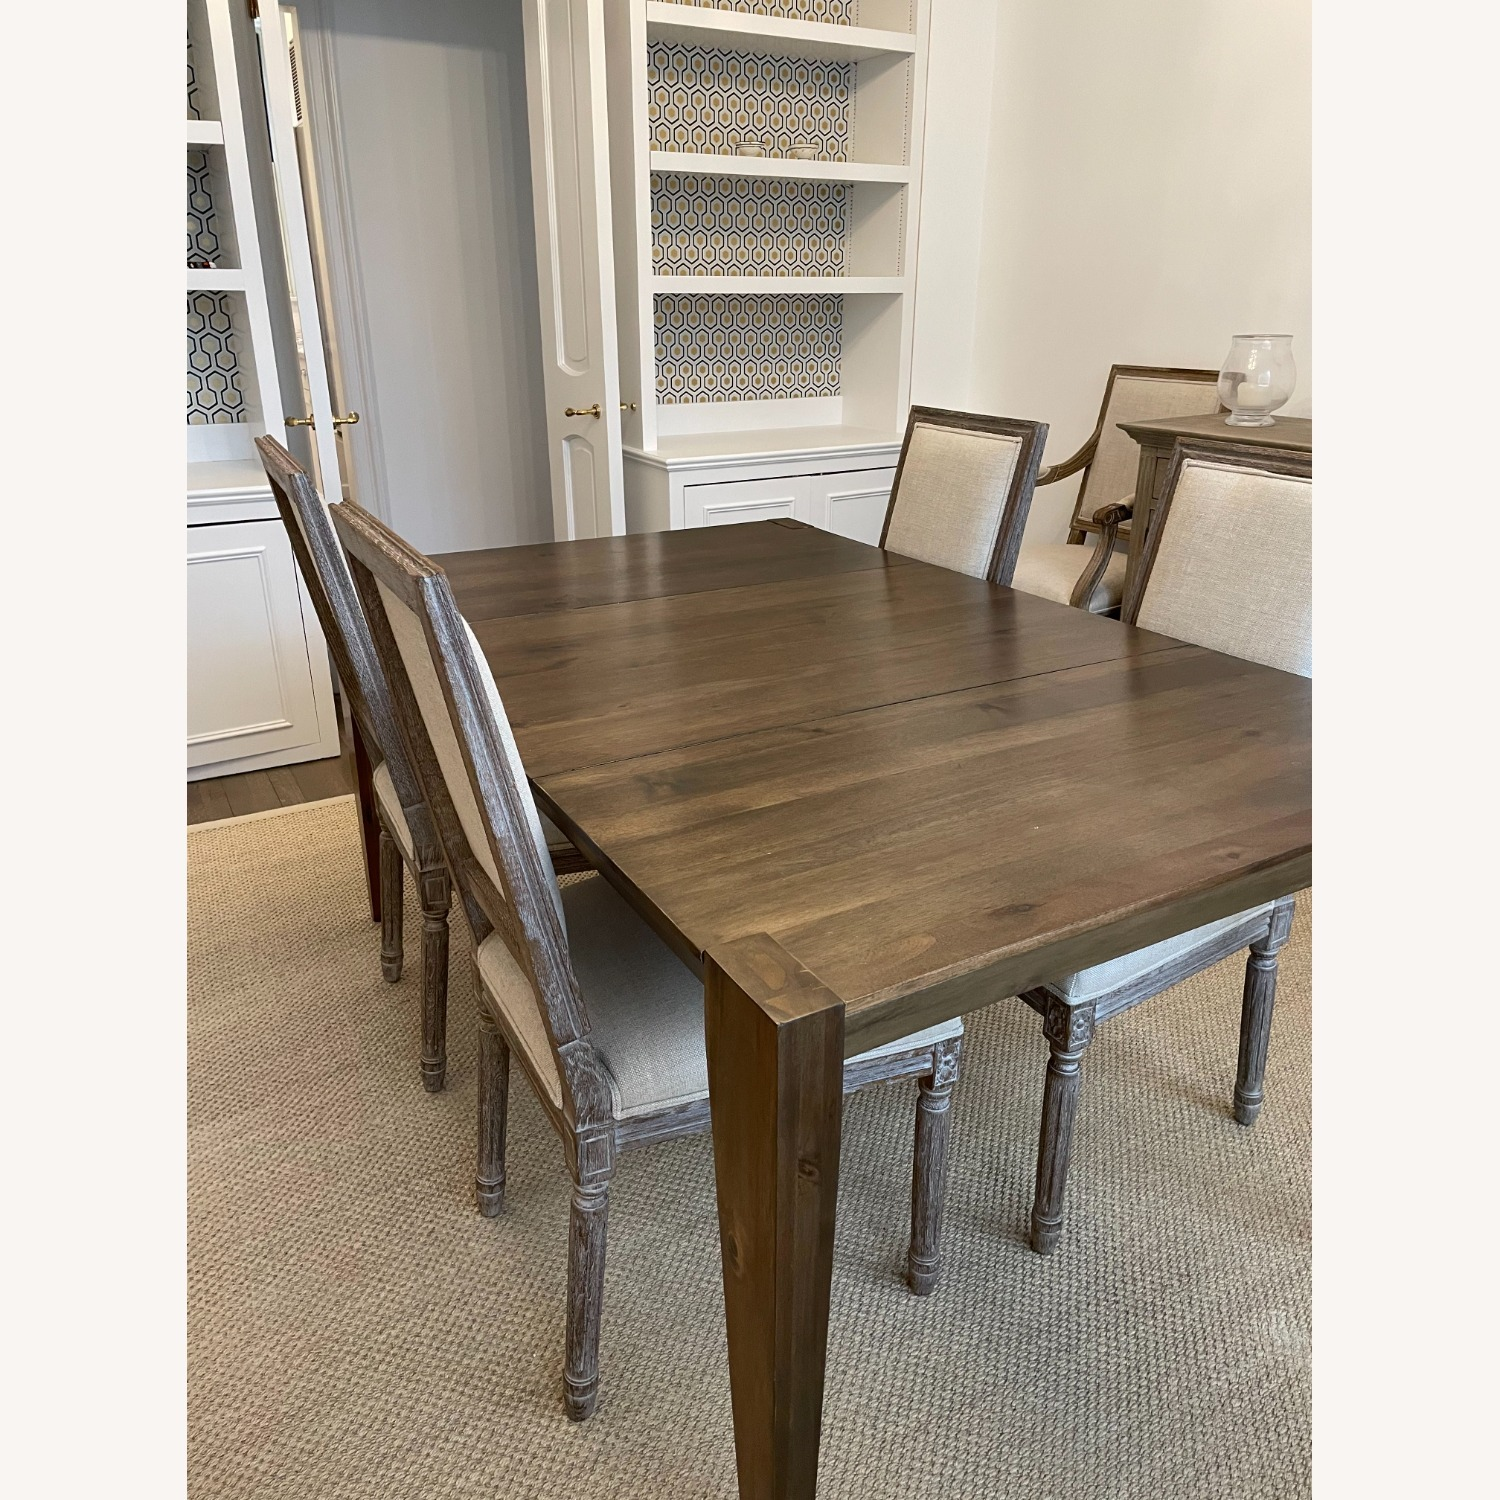 Restoration Hardware French Dining End Chairs (4) - image-1